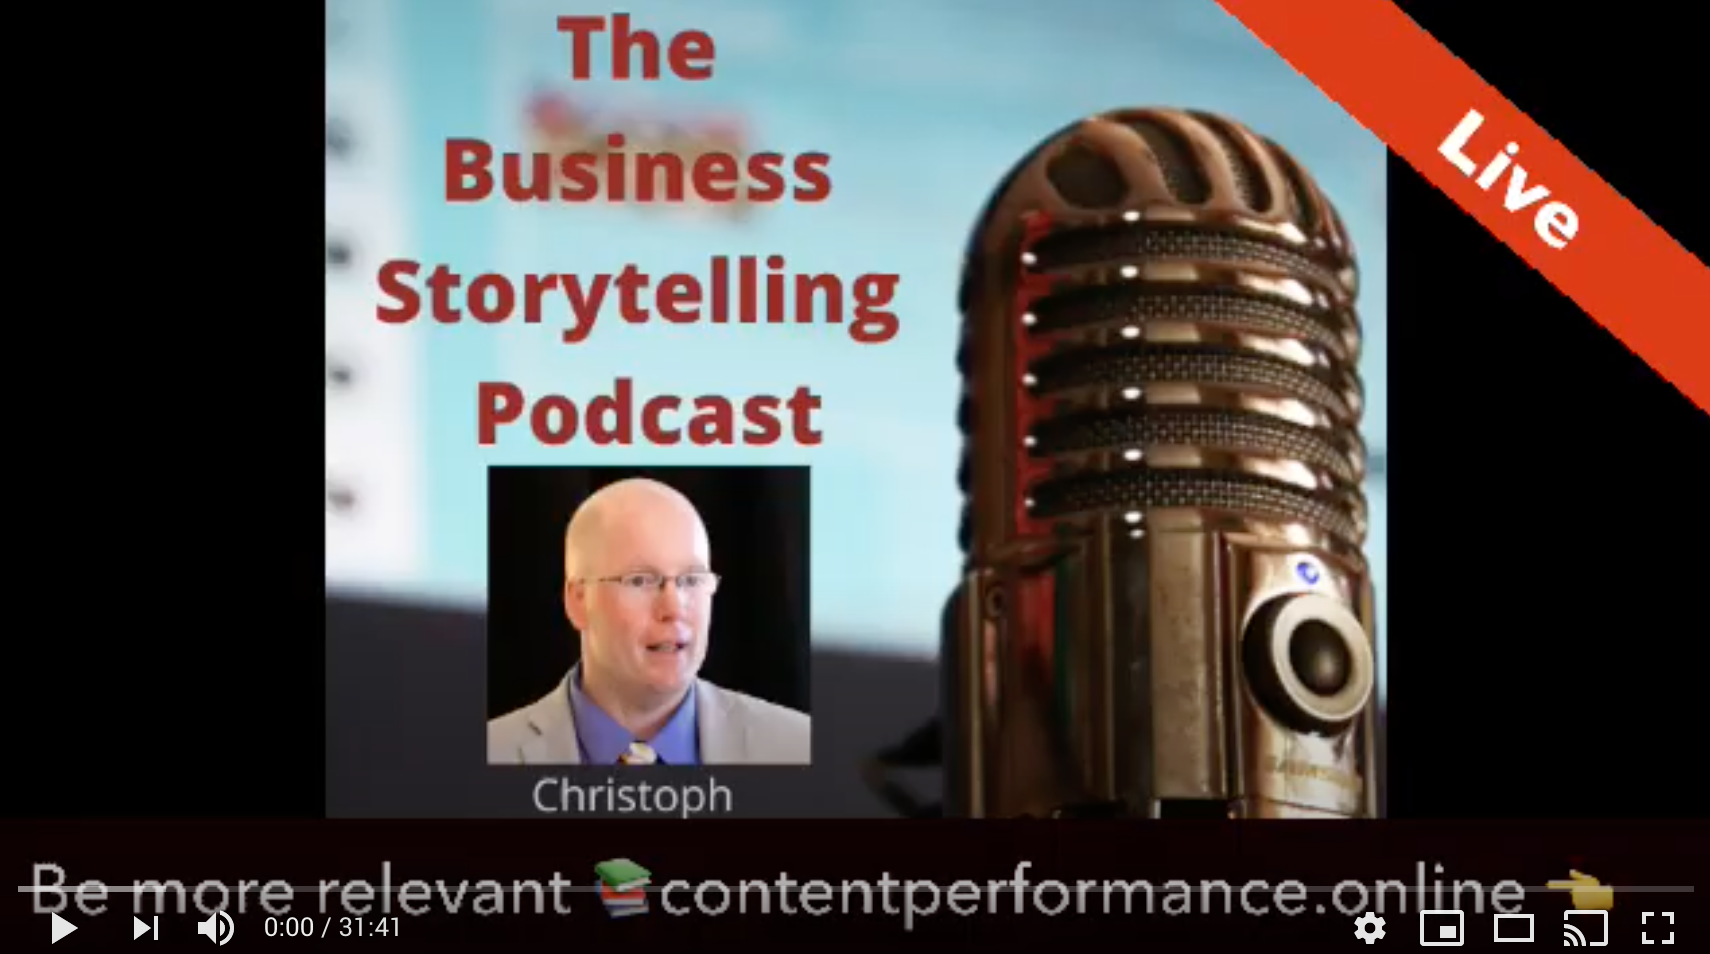 Image from Watch our interview on the Business Storytelling Podcast